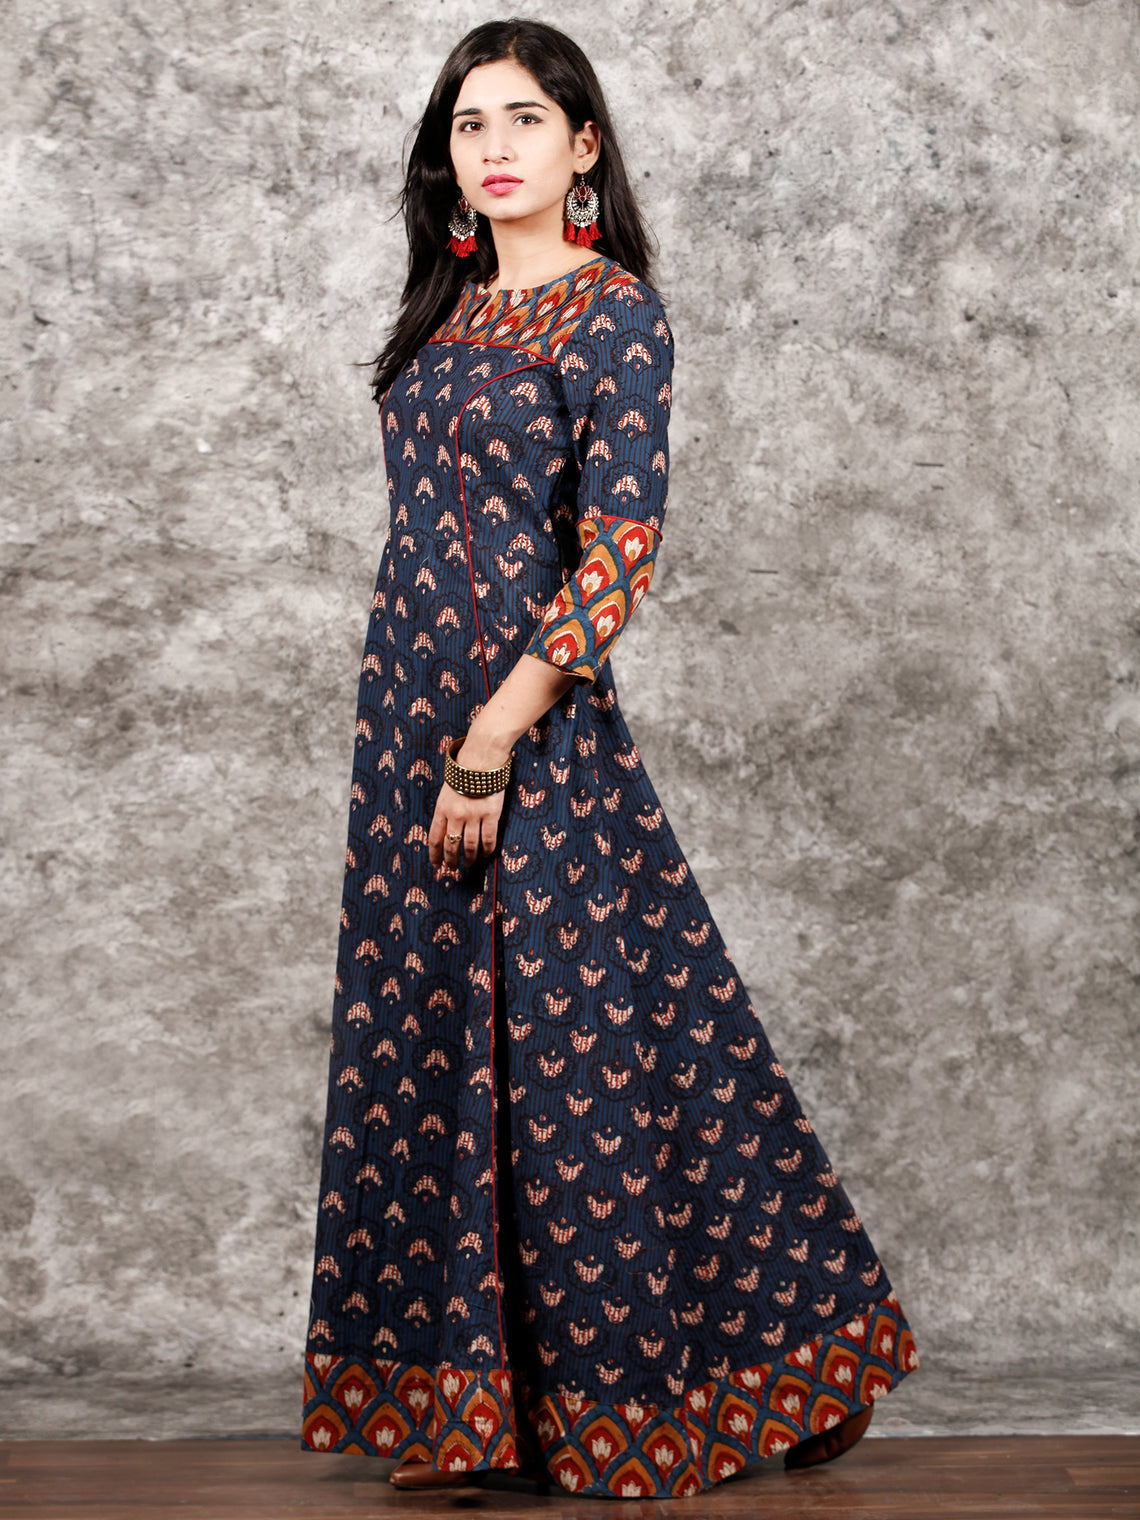 Indigo Mustard Red Hand Block Printed Long Cotton Dress With Pin tucks Details  - D186F998